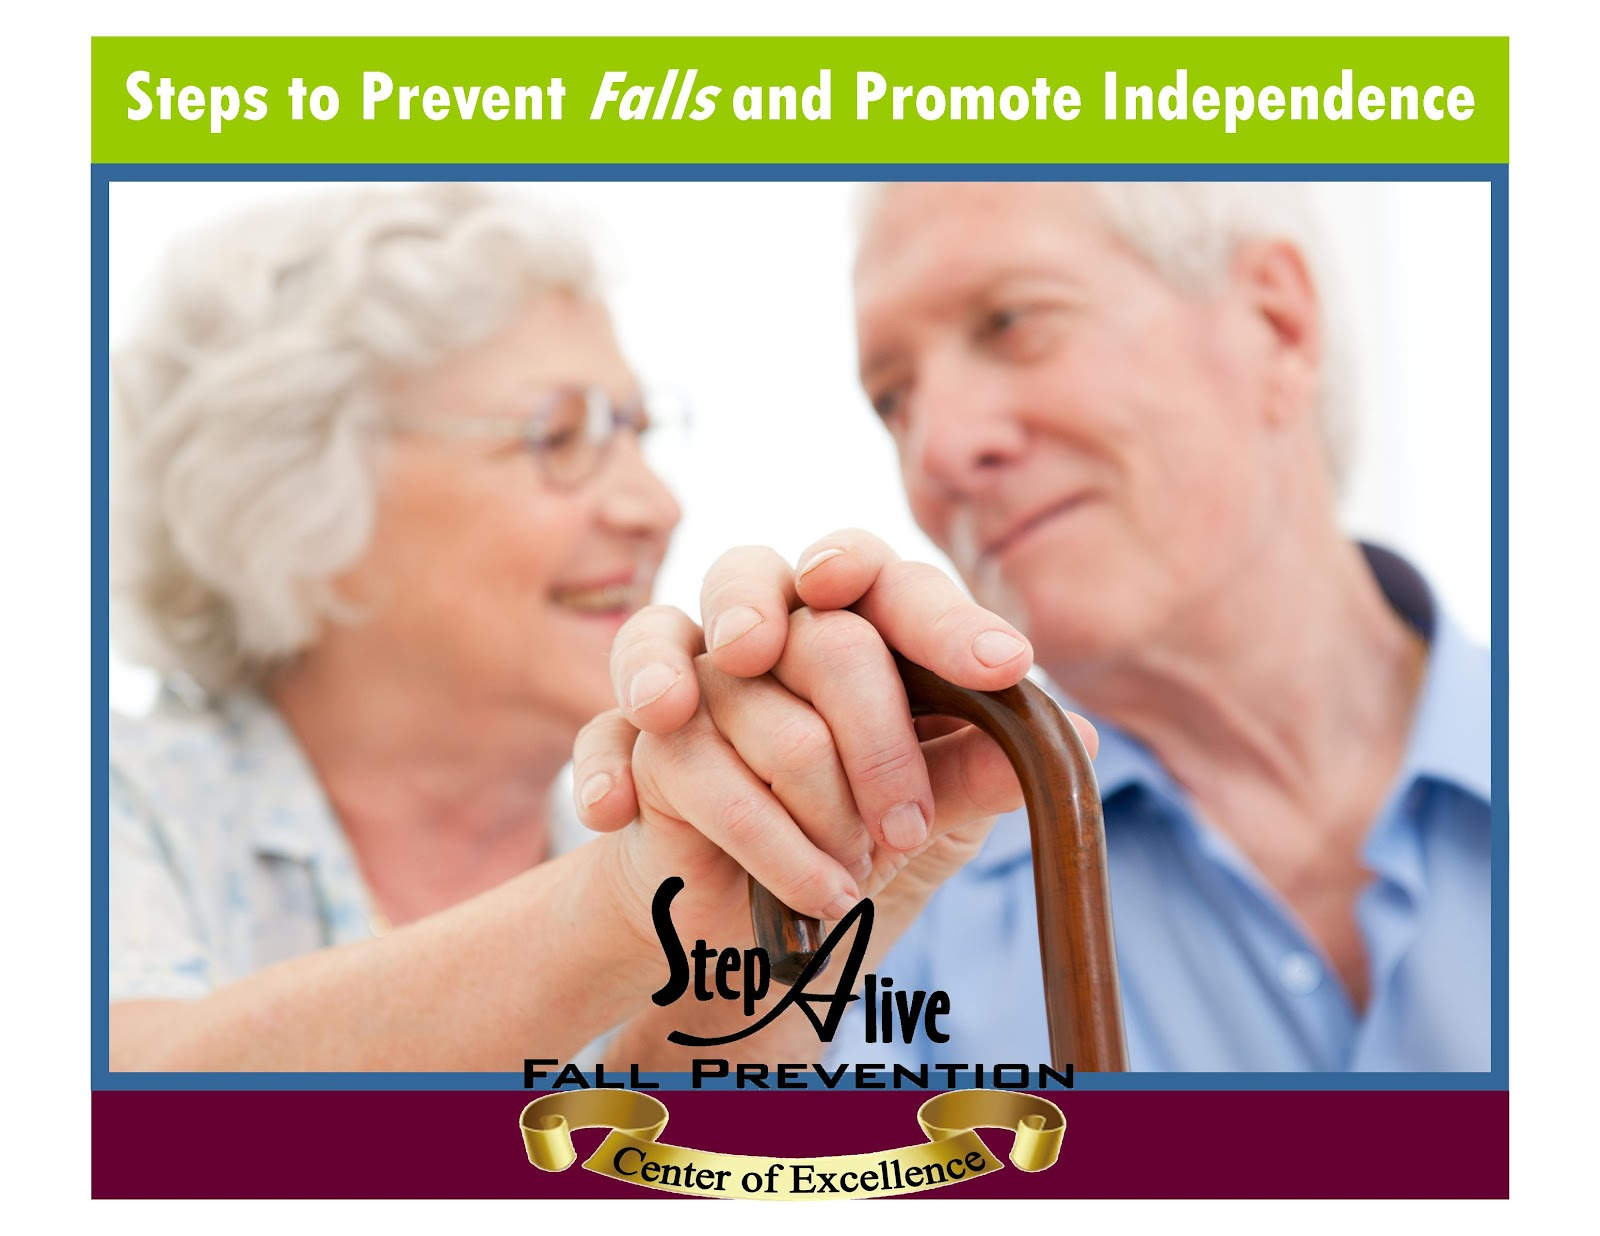 Prevent Falls-1.bp.blogspot.com